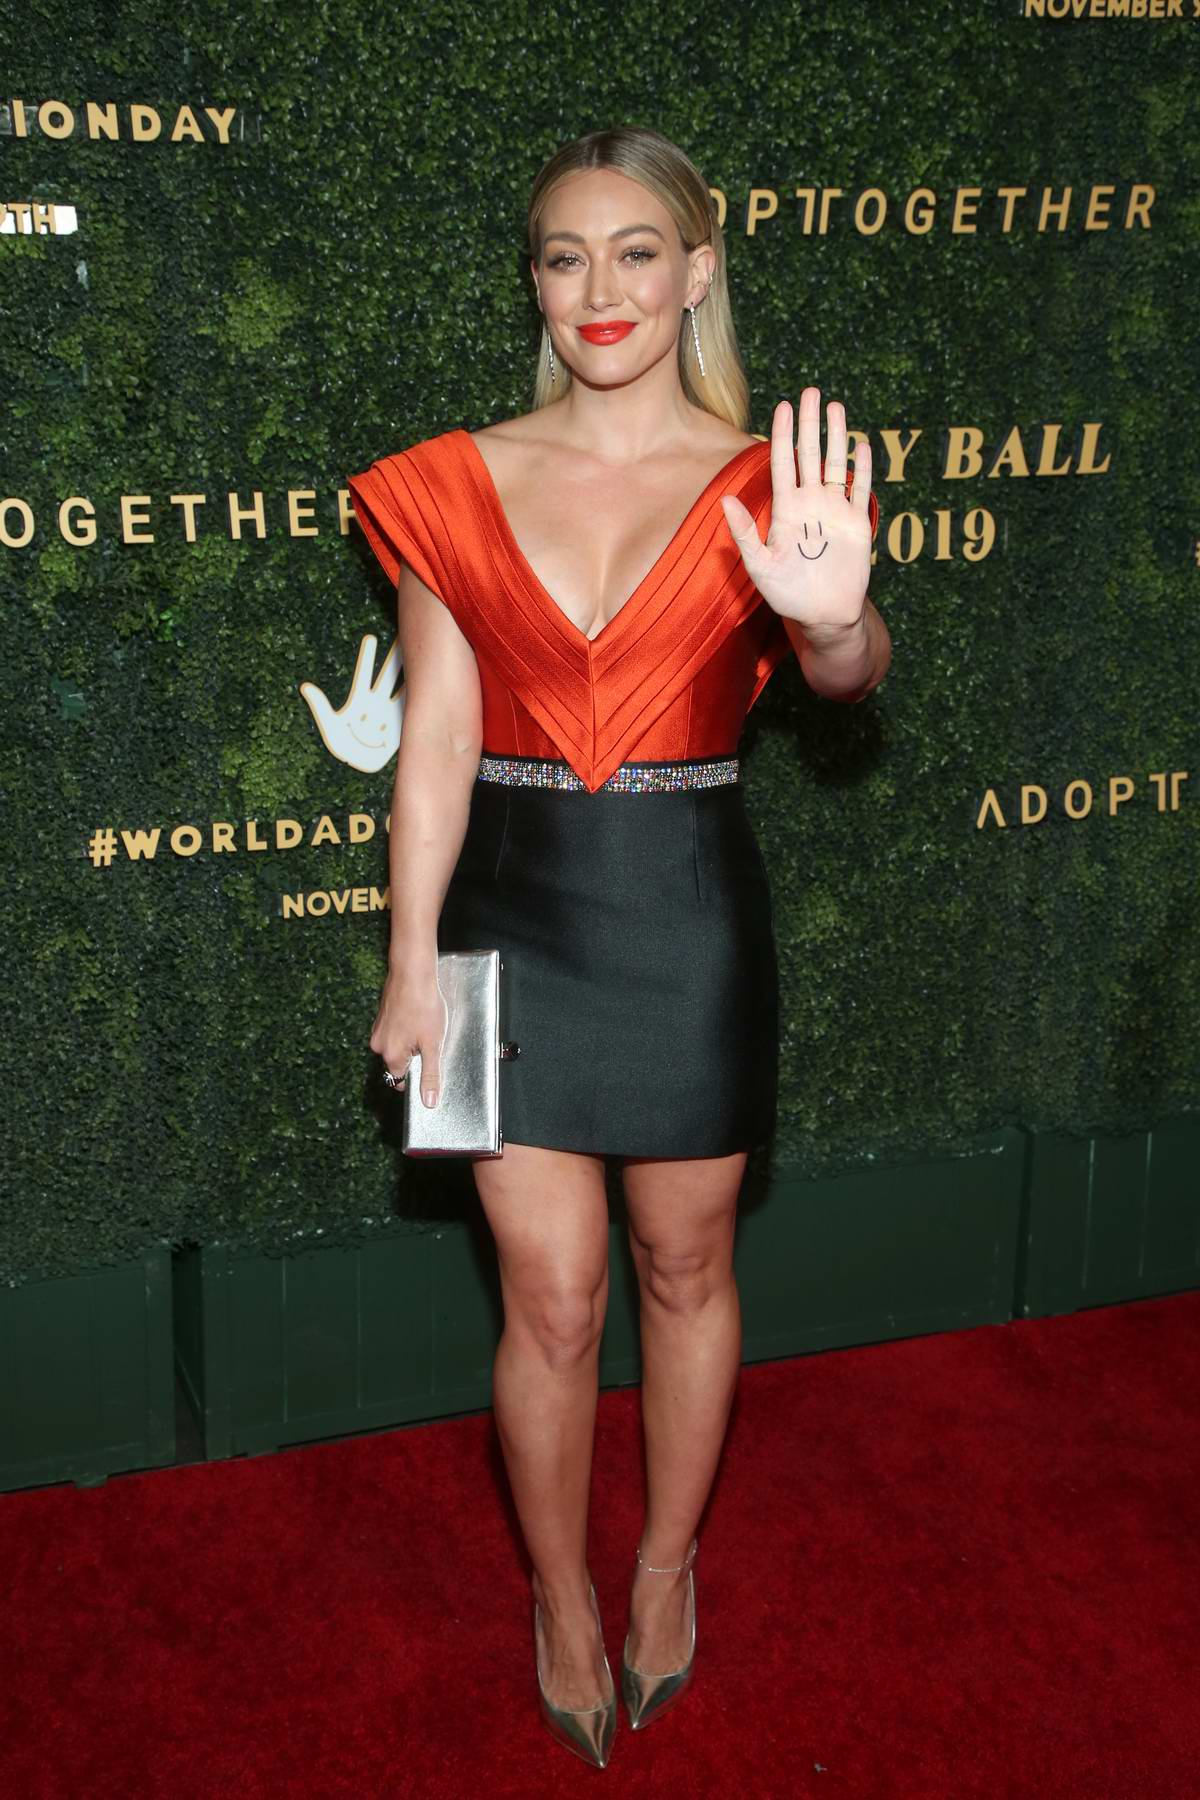 Hilary Duff attends The 5th Adopt Together Baby Ball Gala in Los Angeles